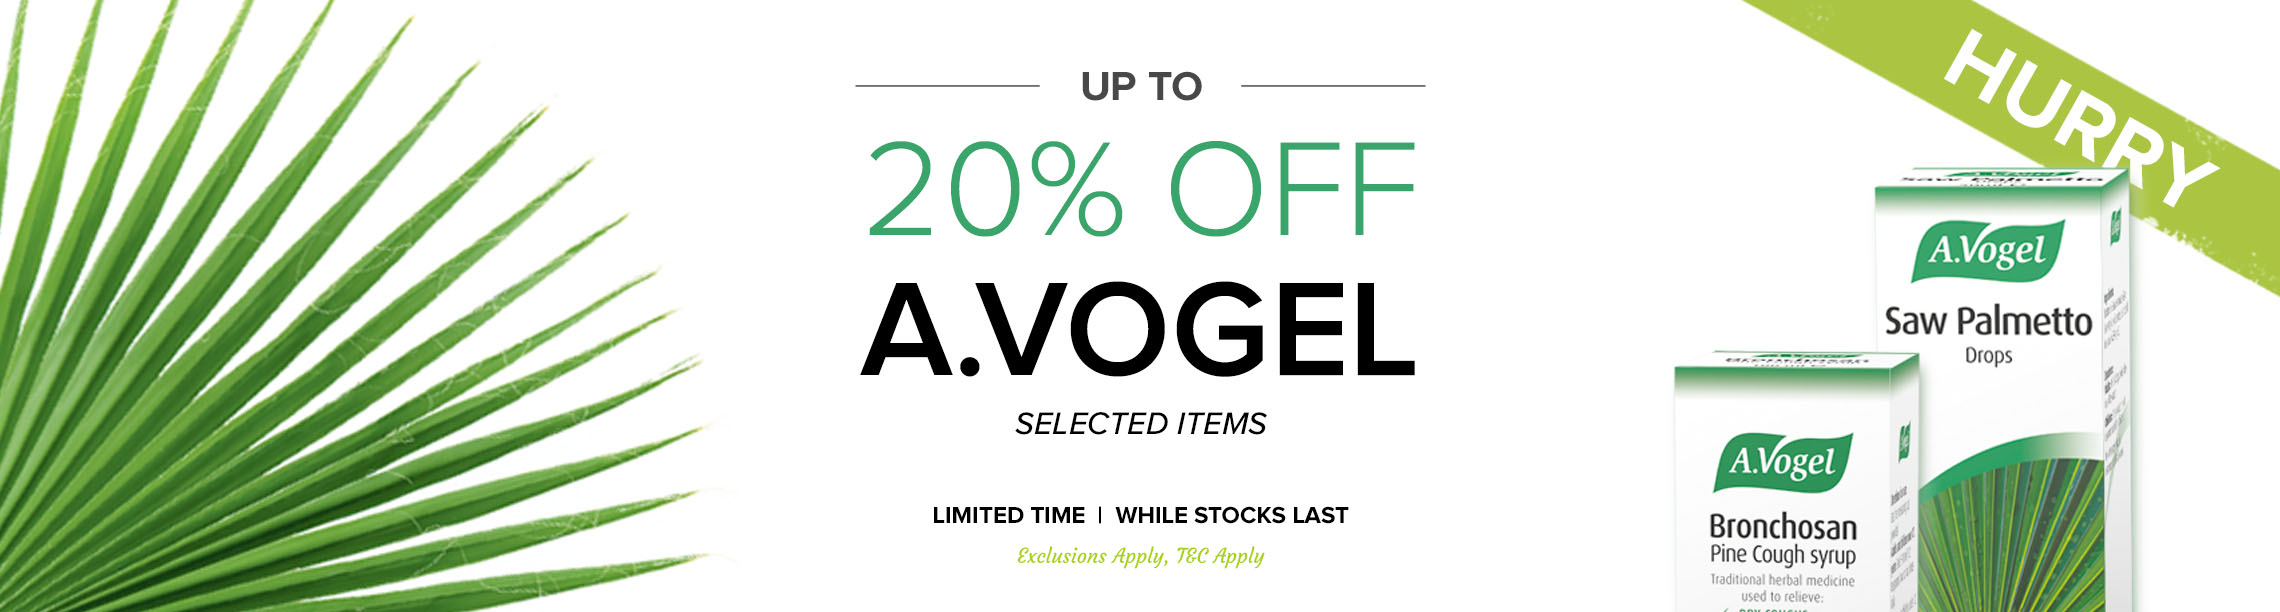 Up To 20% Off A Vogel